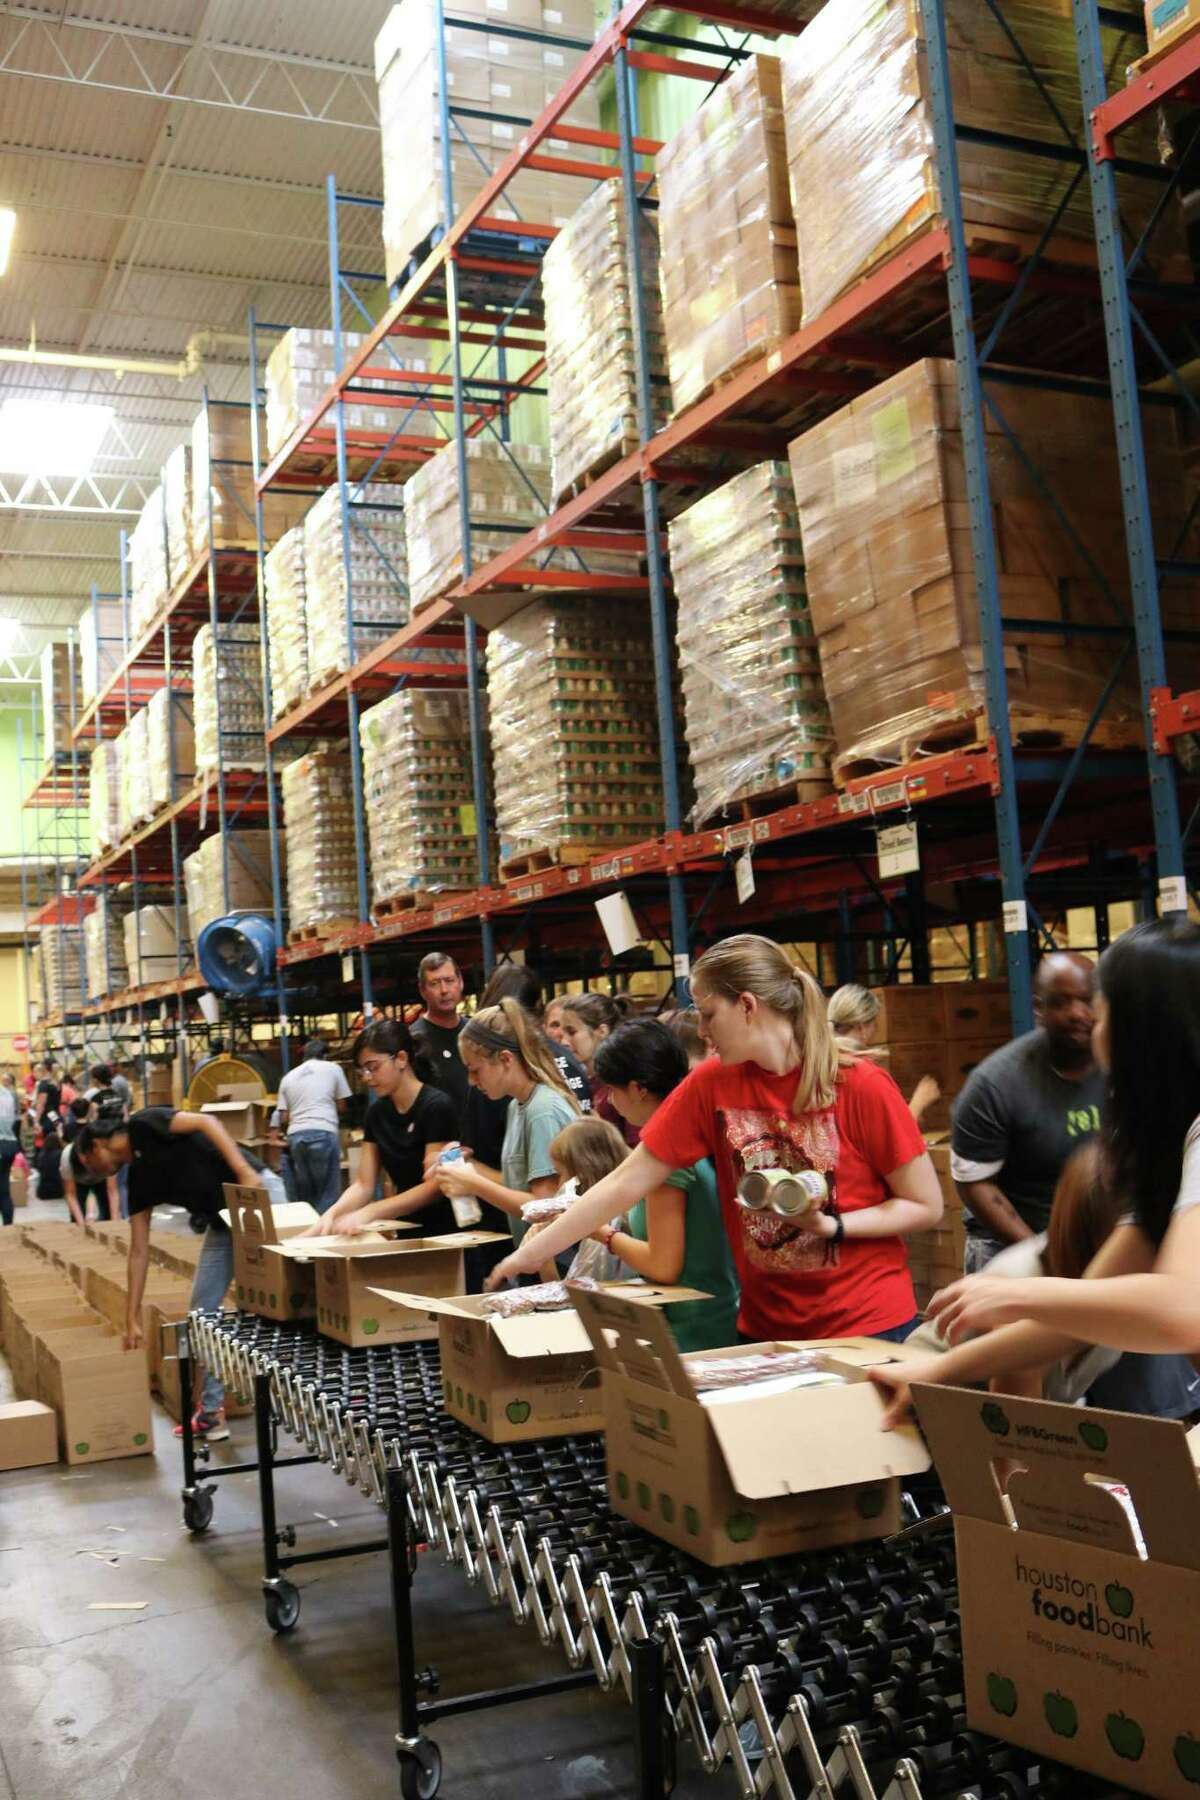 Immediately after Hurricane Harvey the Houston Food Bank saw an increase in volunteers. They were put to work sorting and packing food and other supplies for relief efforts.